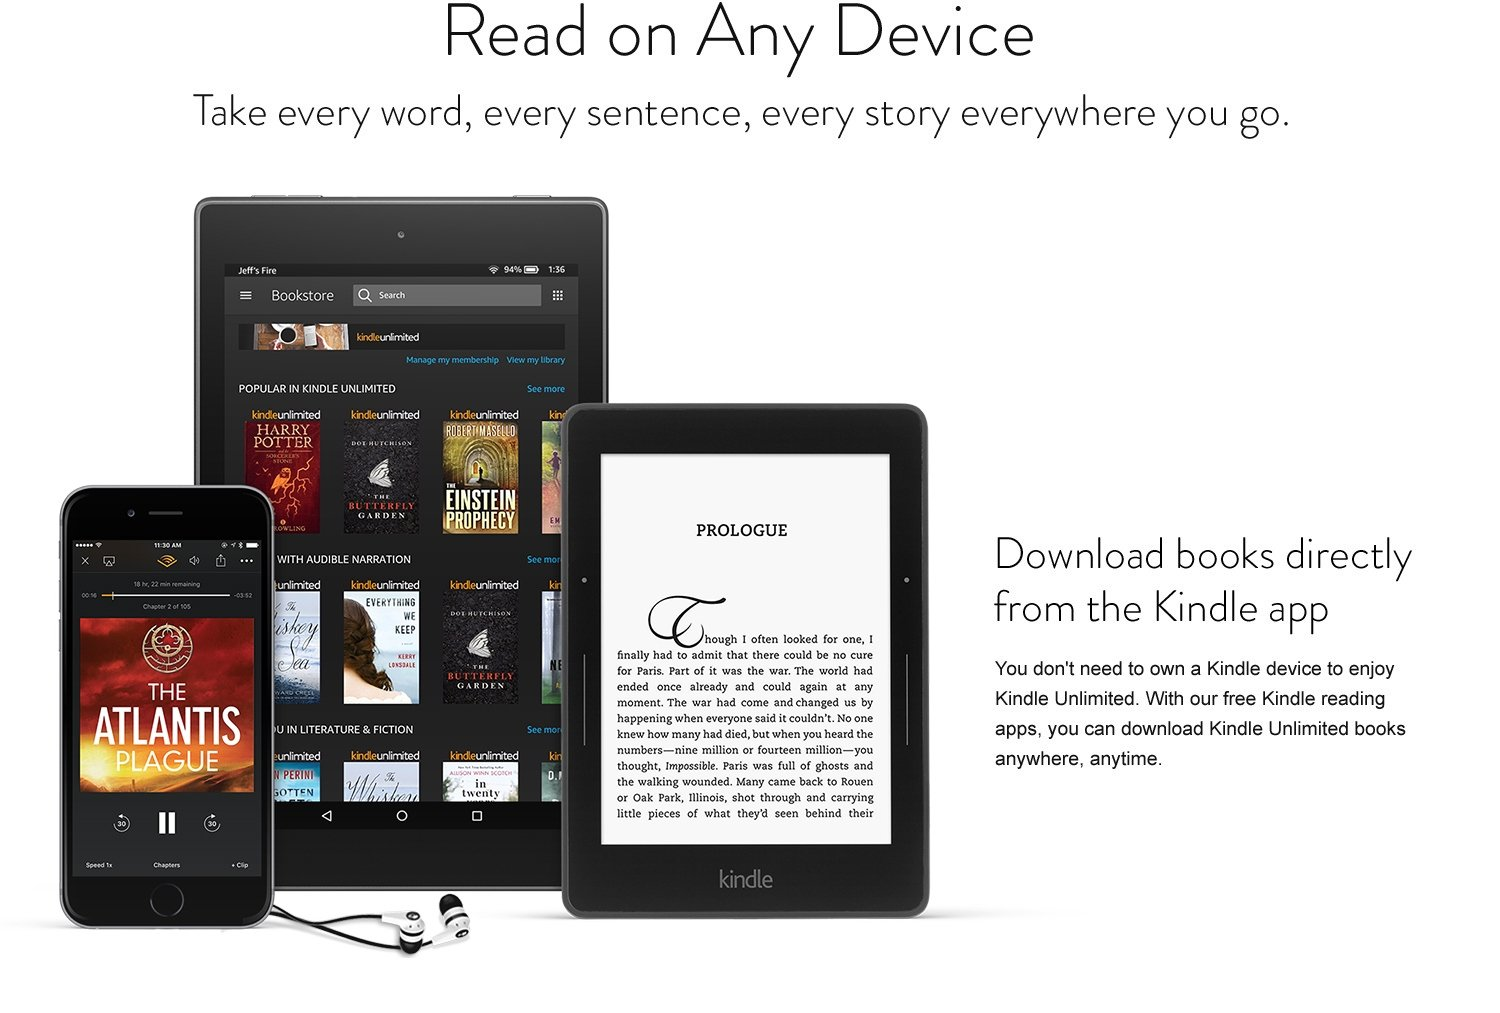 kindle app and devices